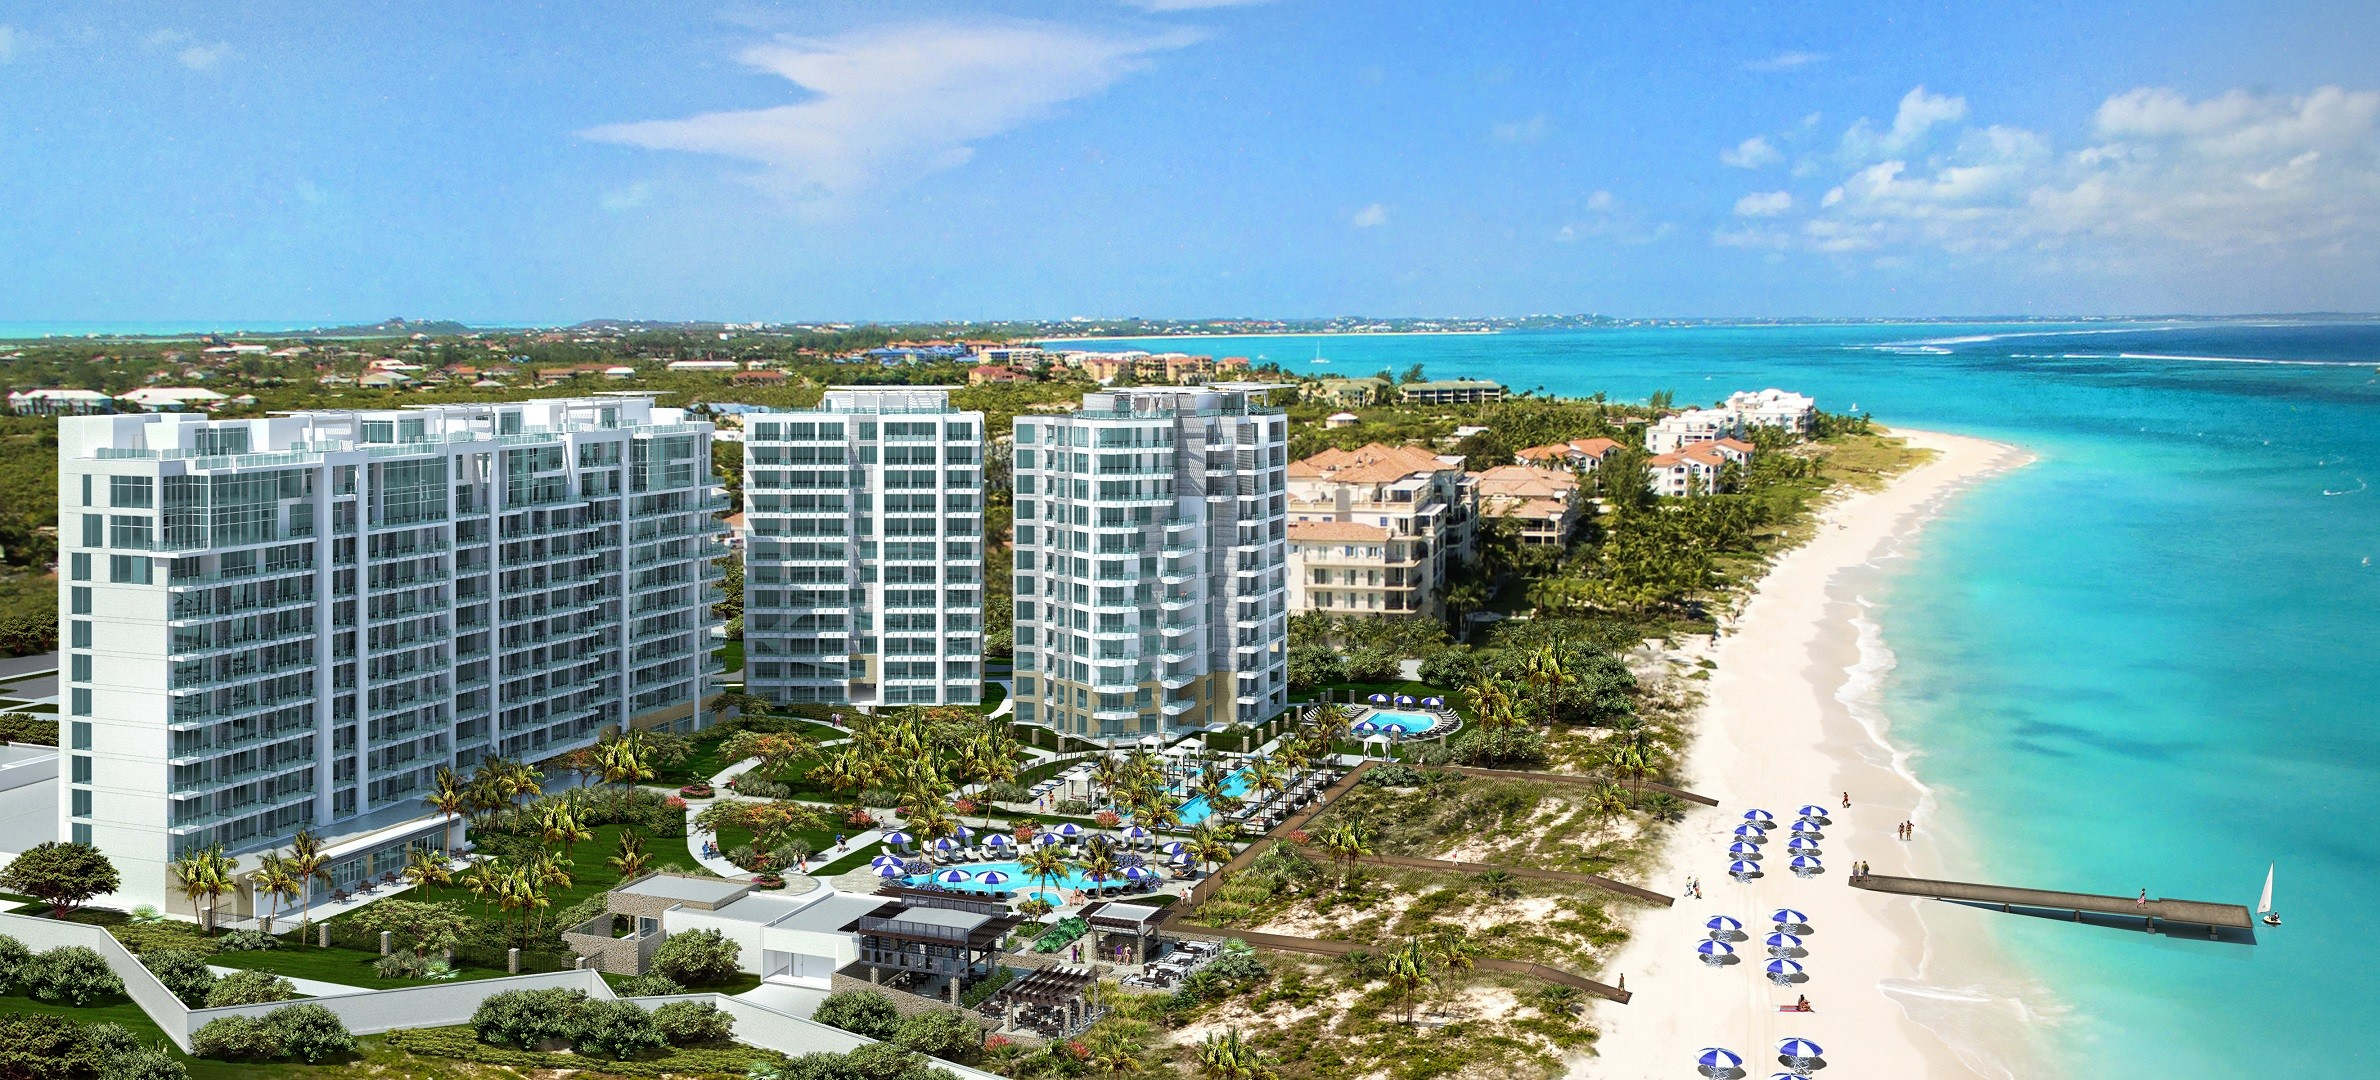 news-main-the-ritz-carlton-debuts-in-turks-caicos-bringing-the-ultimate-in-seaside-luxury-to-the-world-renowned-grace-bay.1624390043.jpg